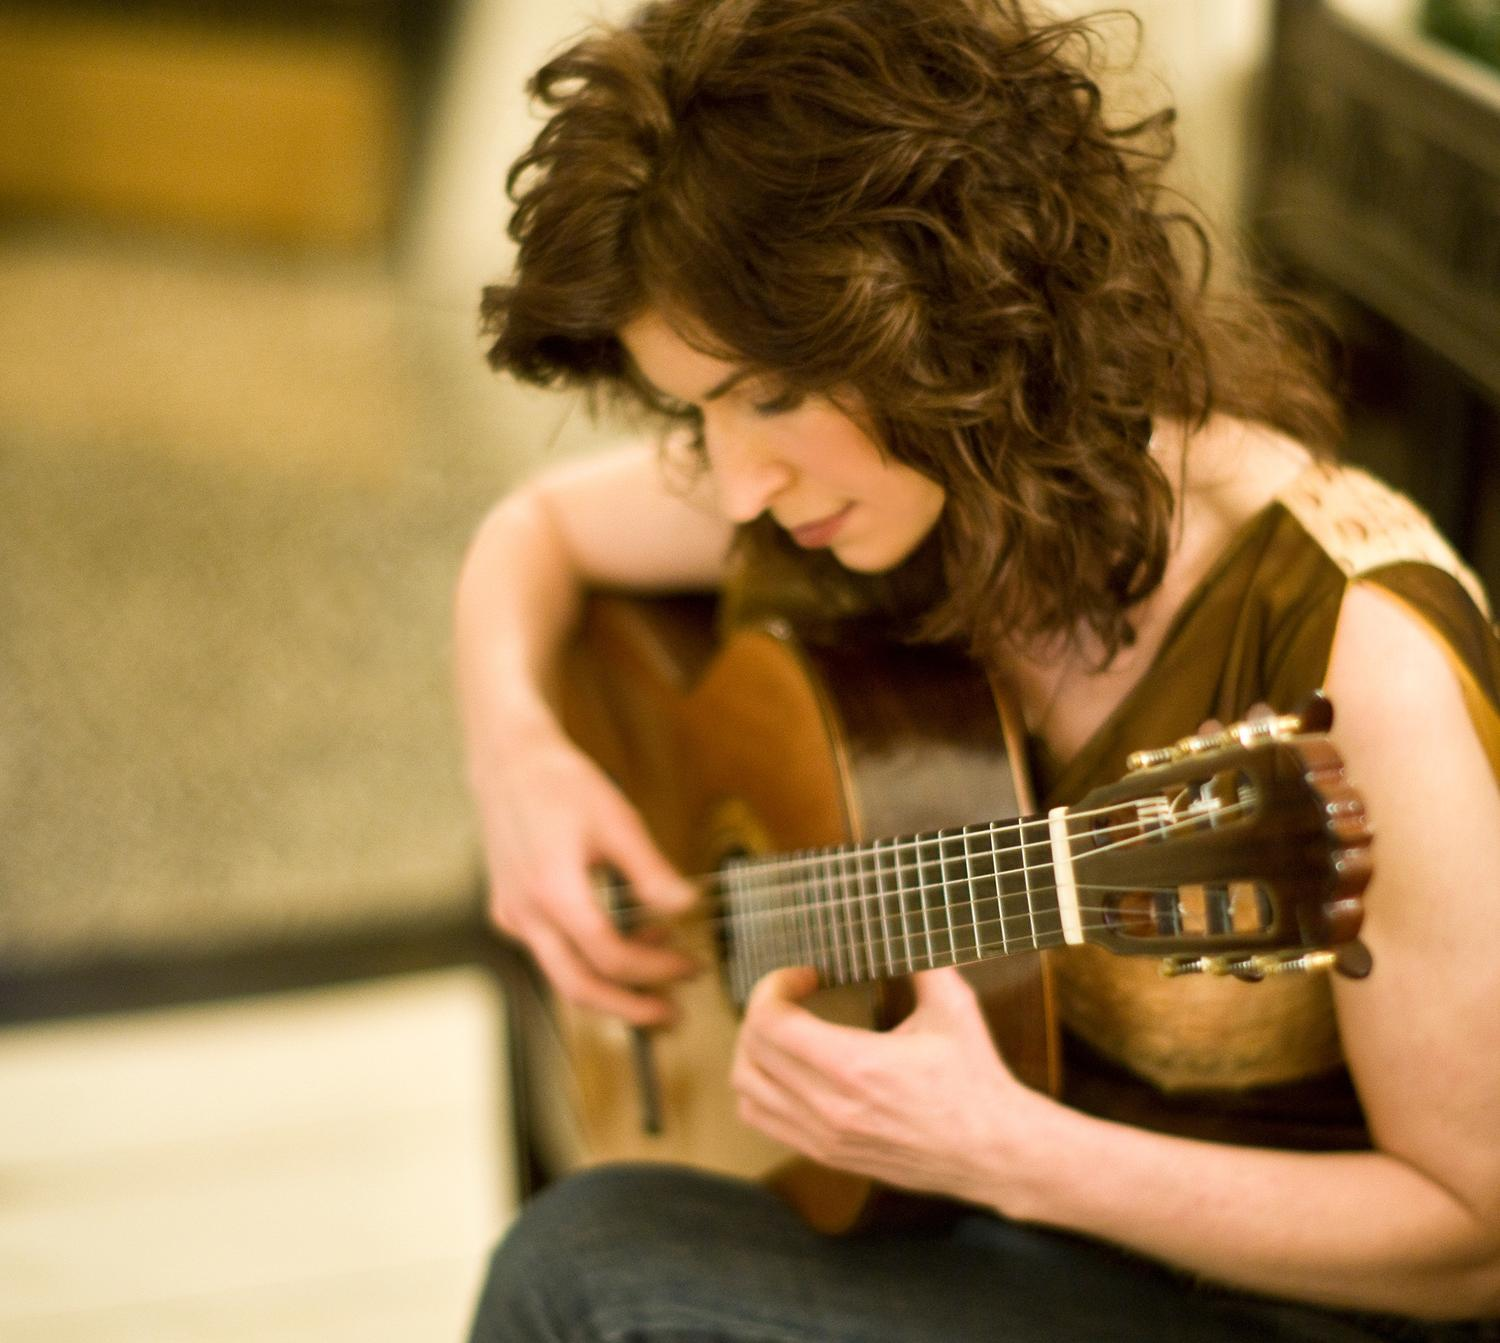 A New Documentary On The Acclaimed Classical Guitarist ...